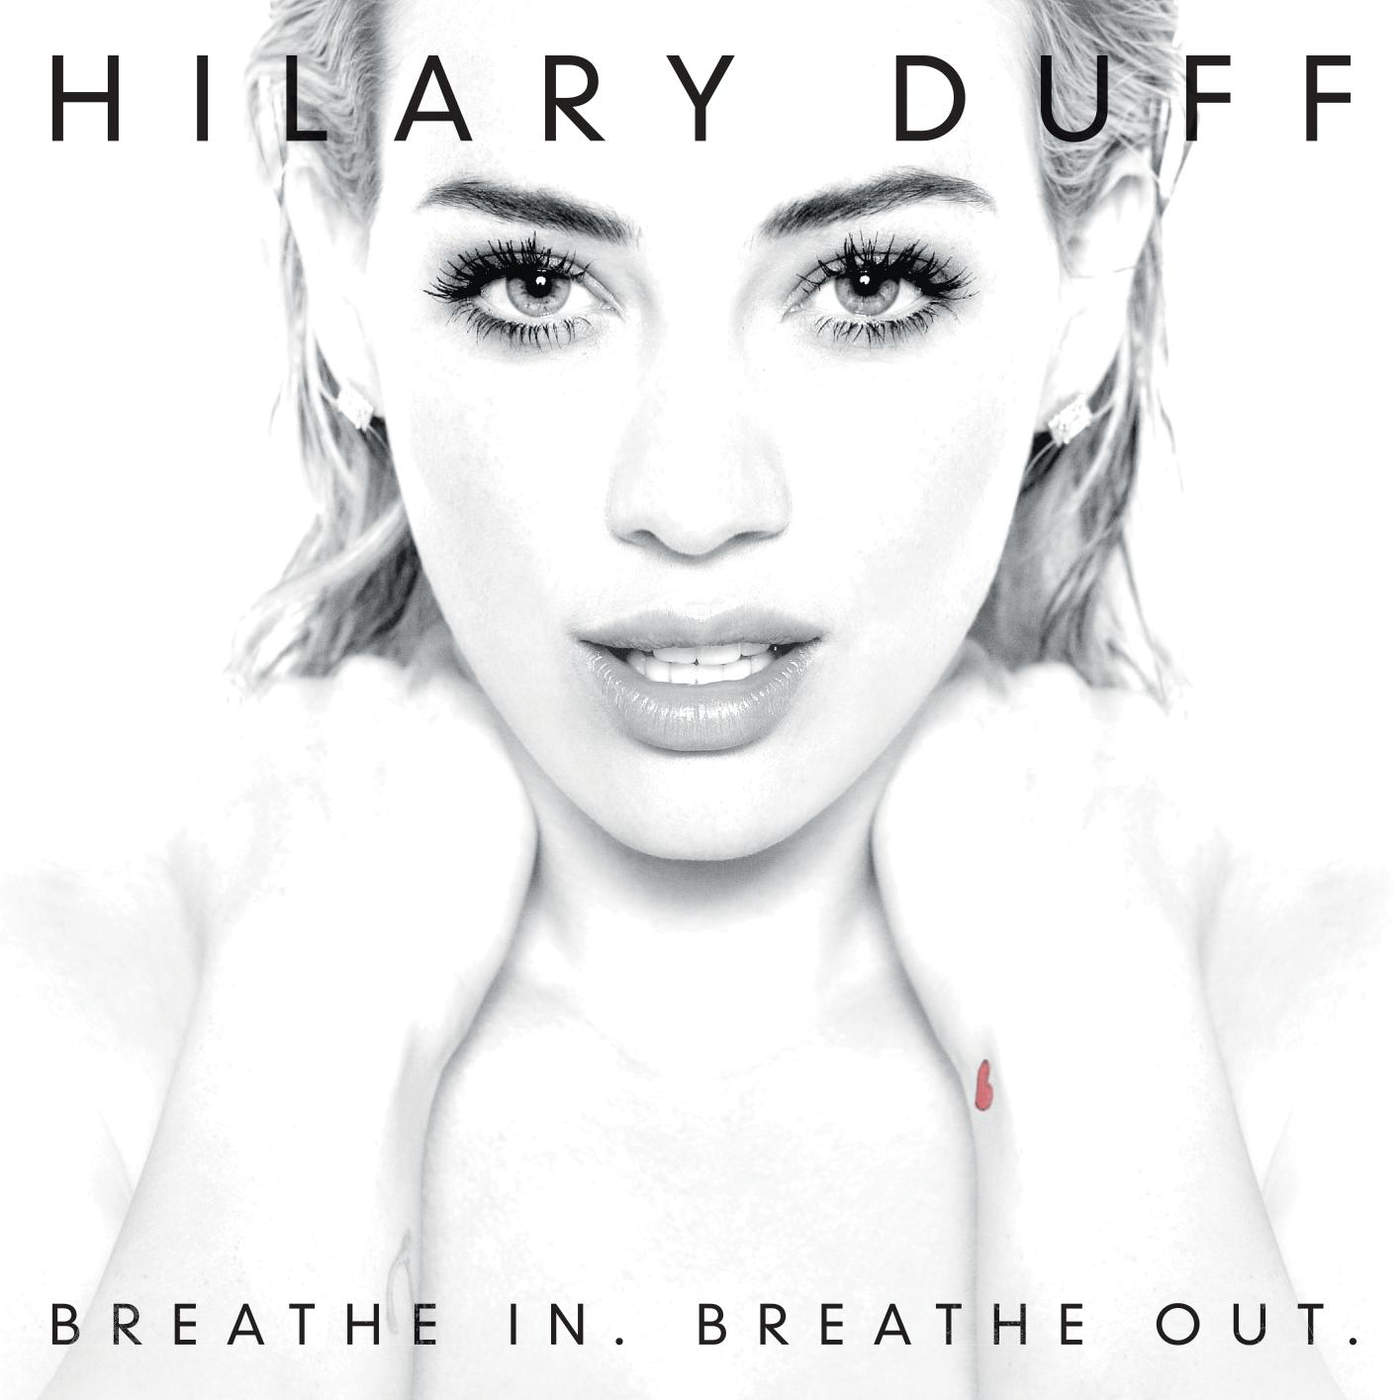 Hilary Duff, Breathe In. Breathe Out.